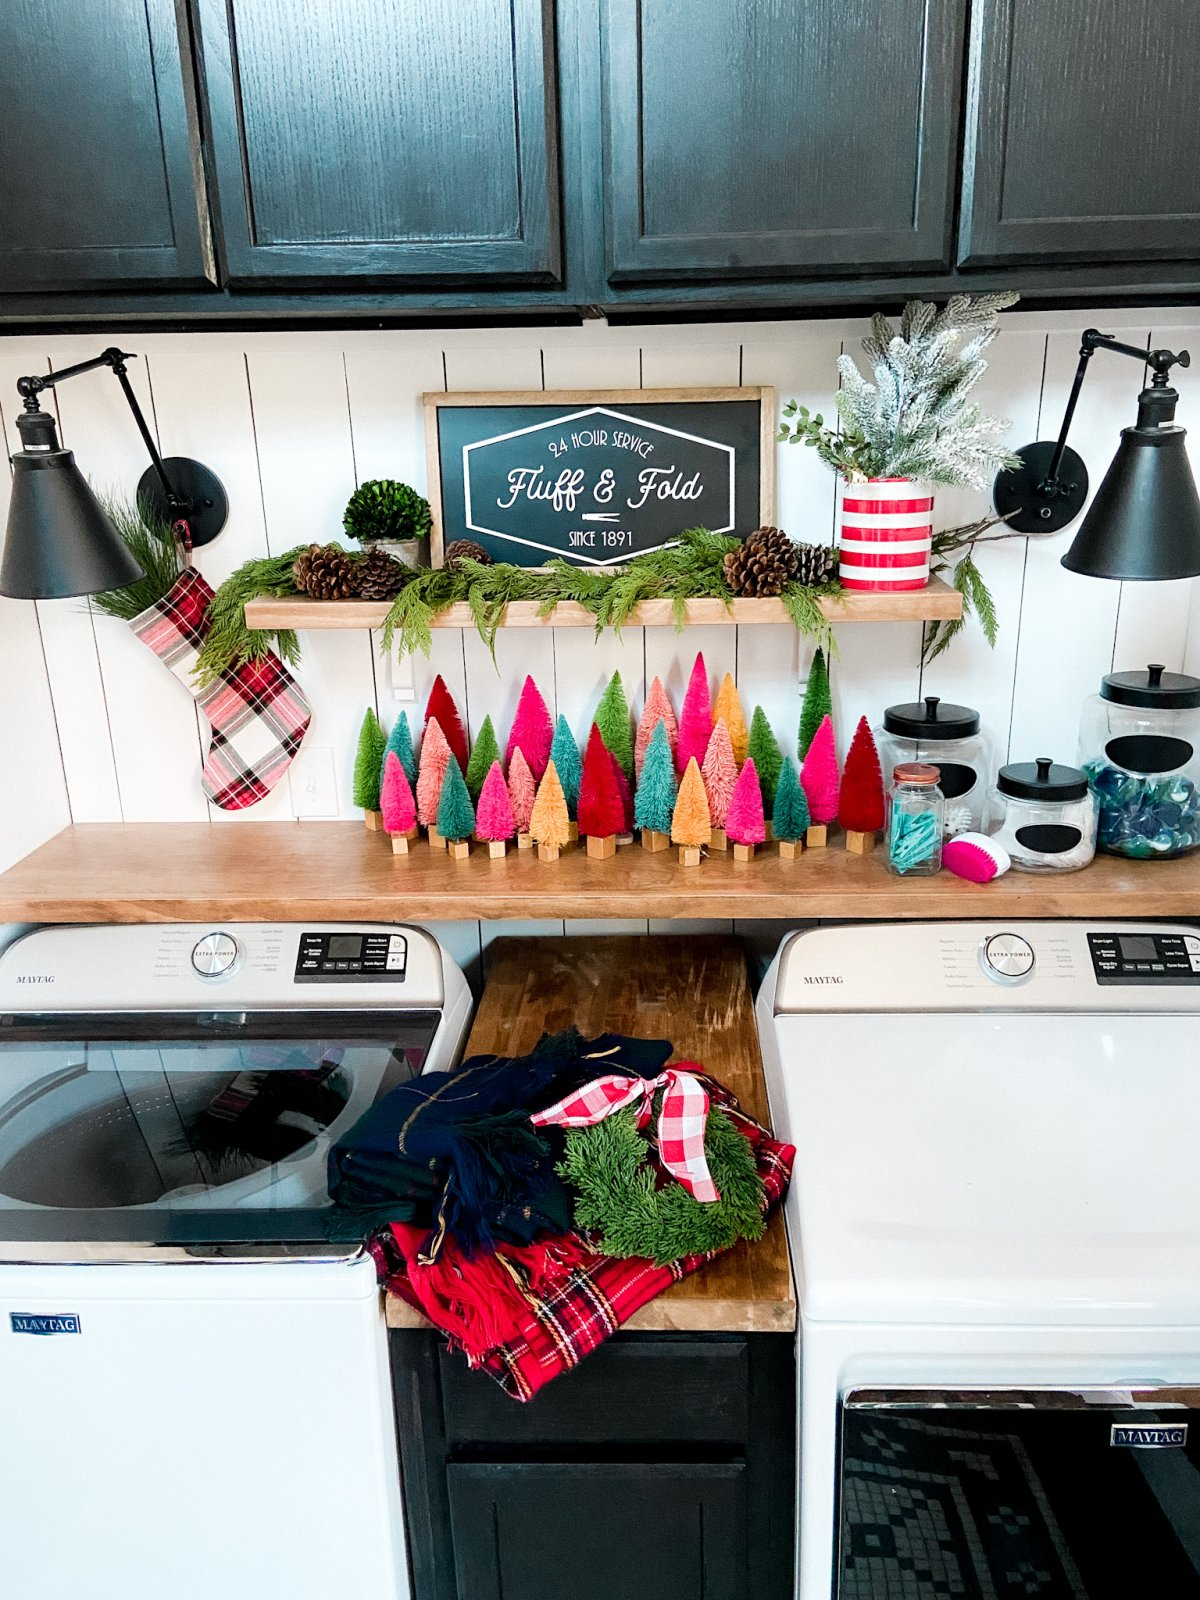 How to manage laundry efficiently with teens and tweens. Having multiple family members doing laundry in one household can be frantic, here are some ways we manage making laundry more efficient.